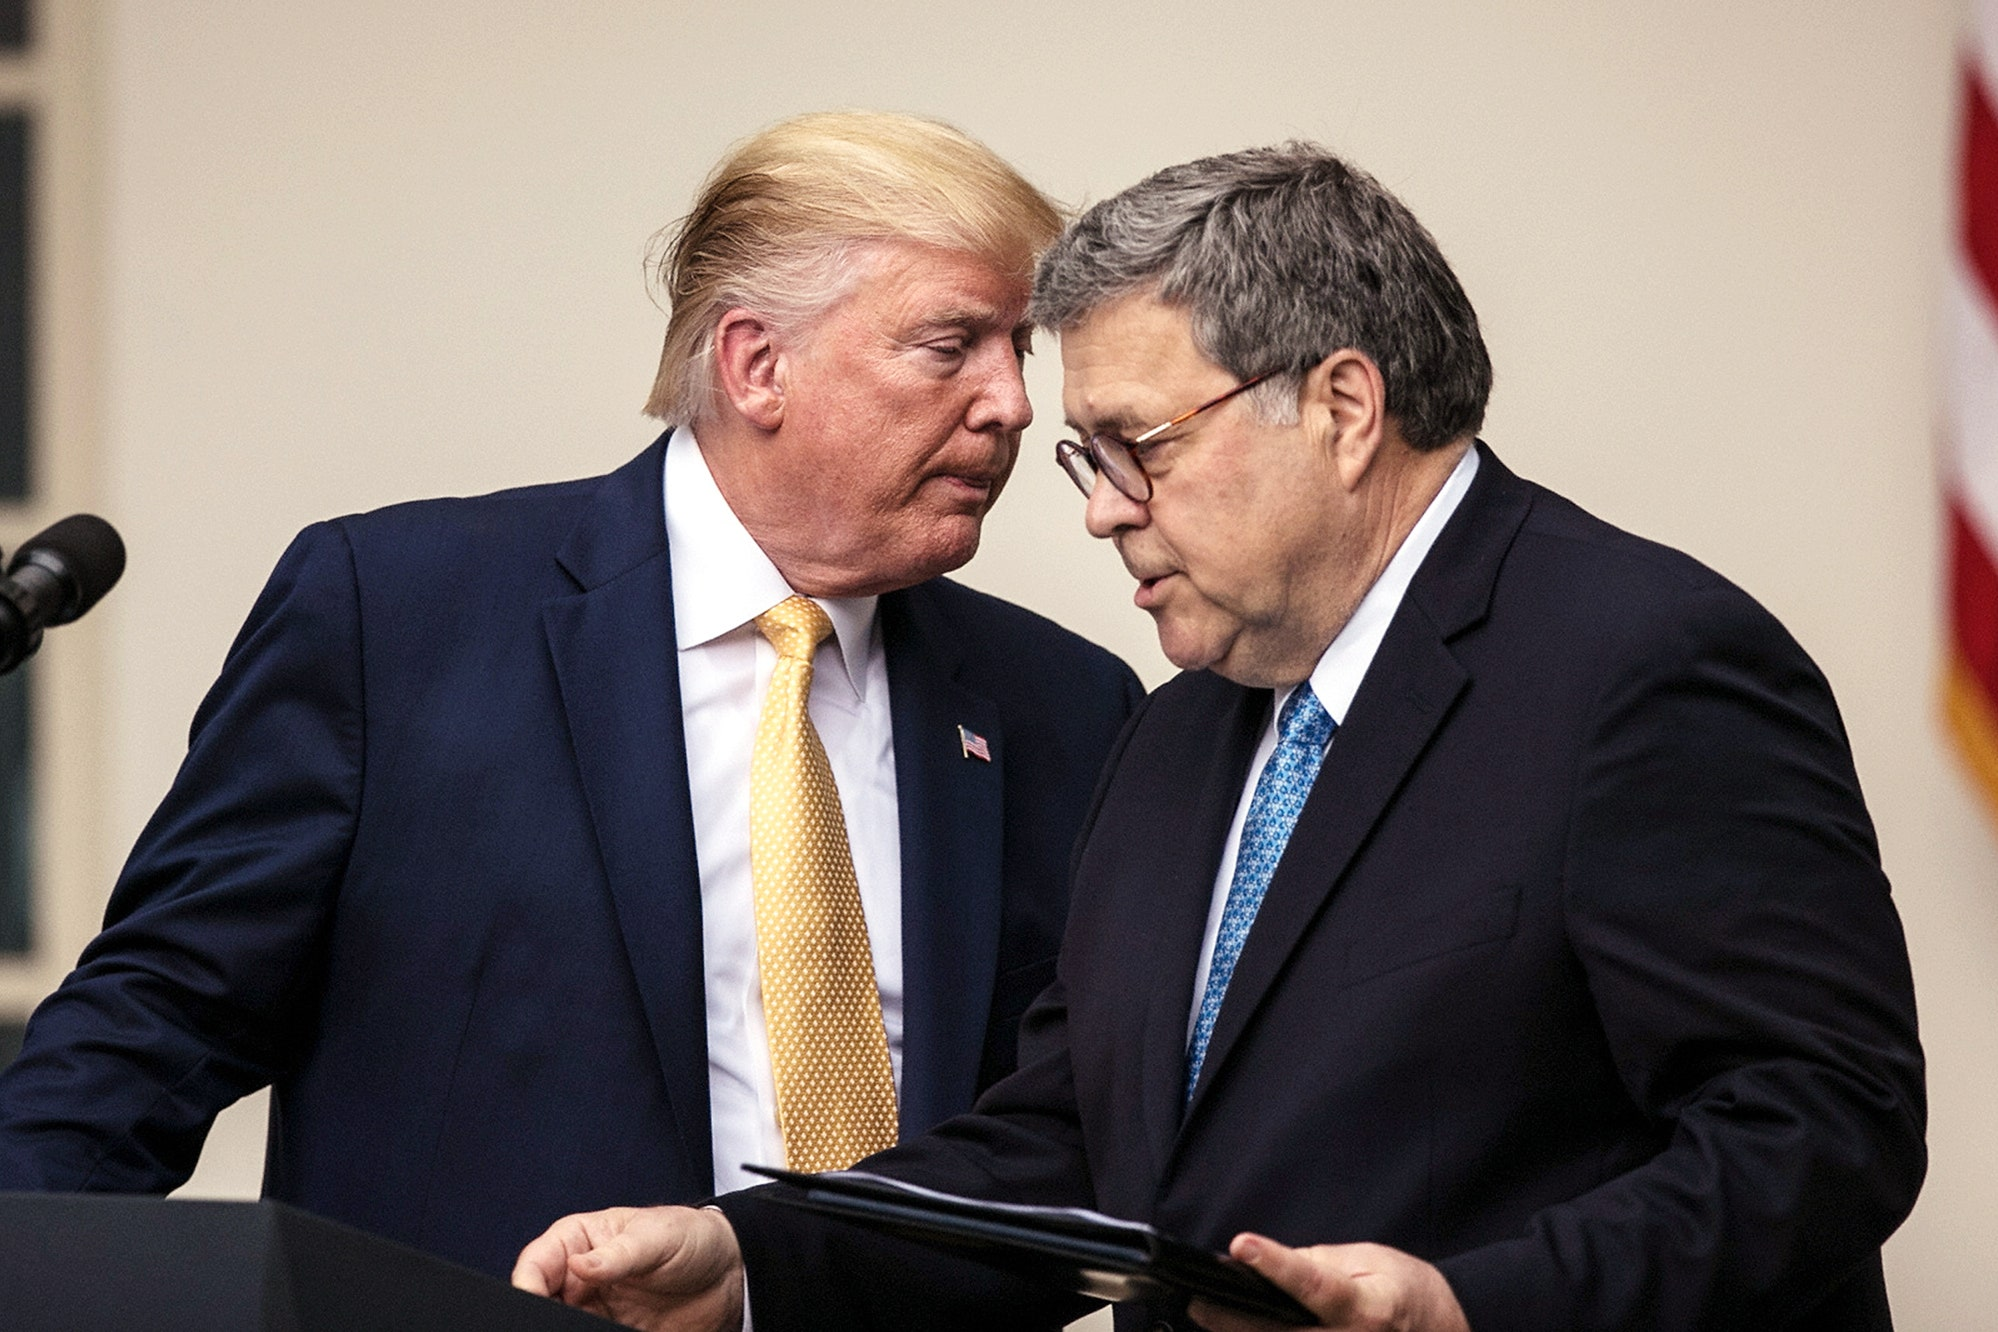 Surprise: William Barr Fully Supports Trump's Totalitarian Oversight Purge | Vanity Fair